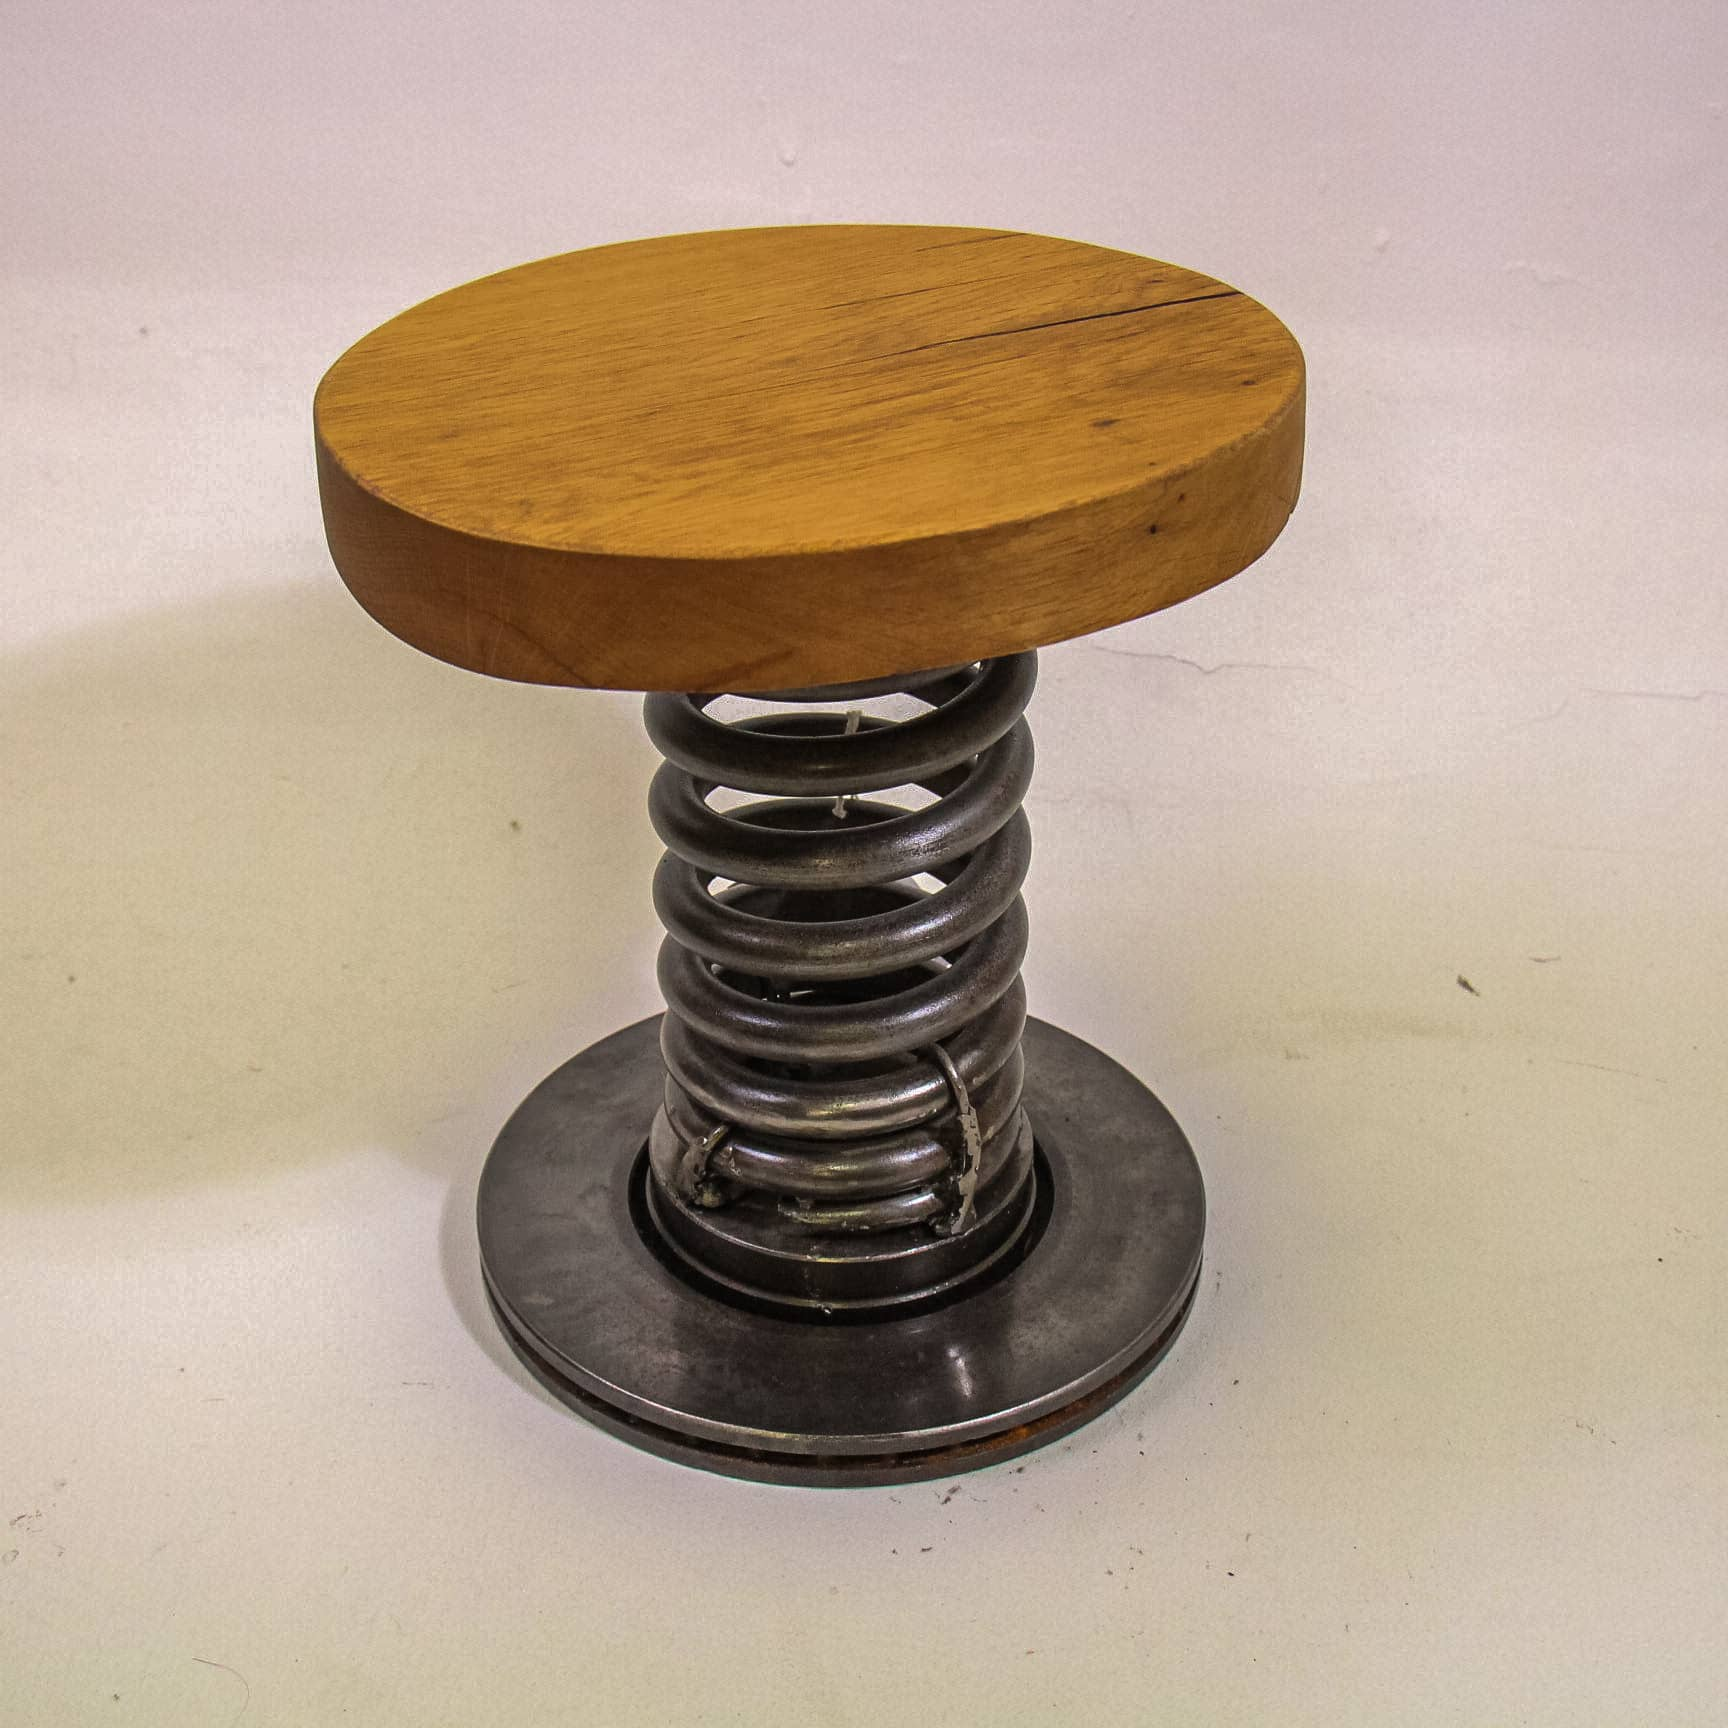 Tabouret tourbillon by Marylou